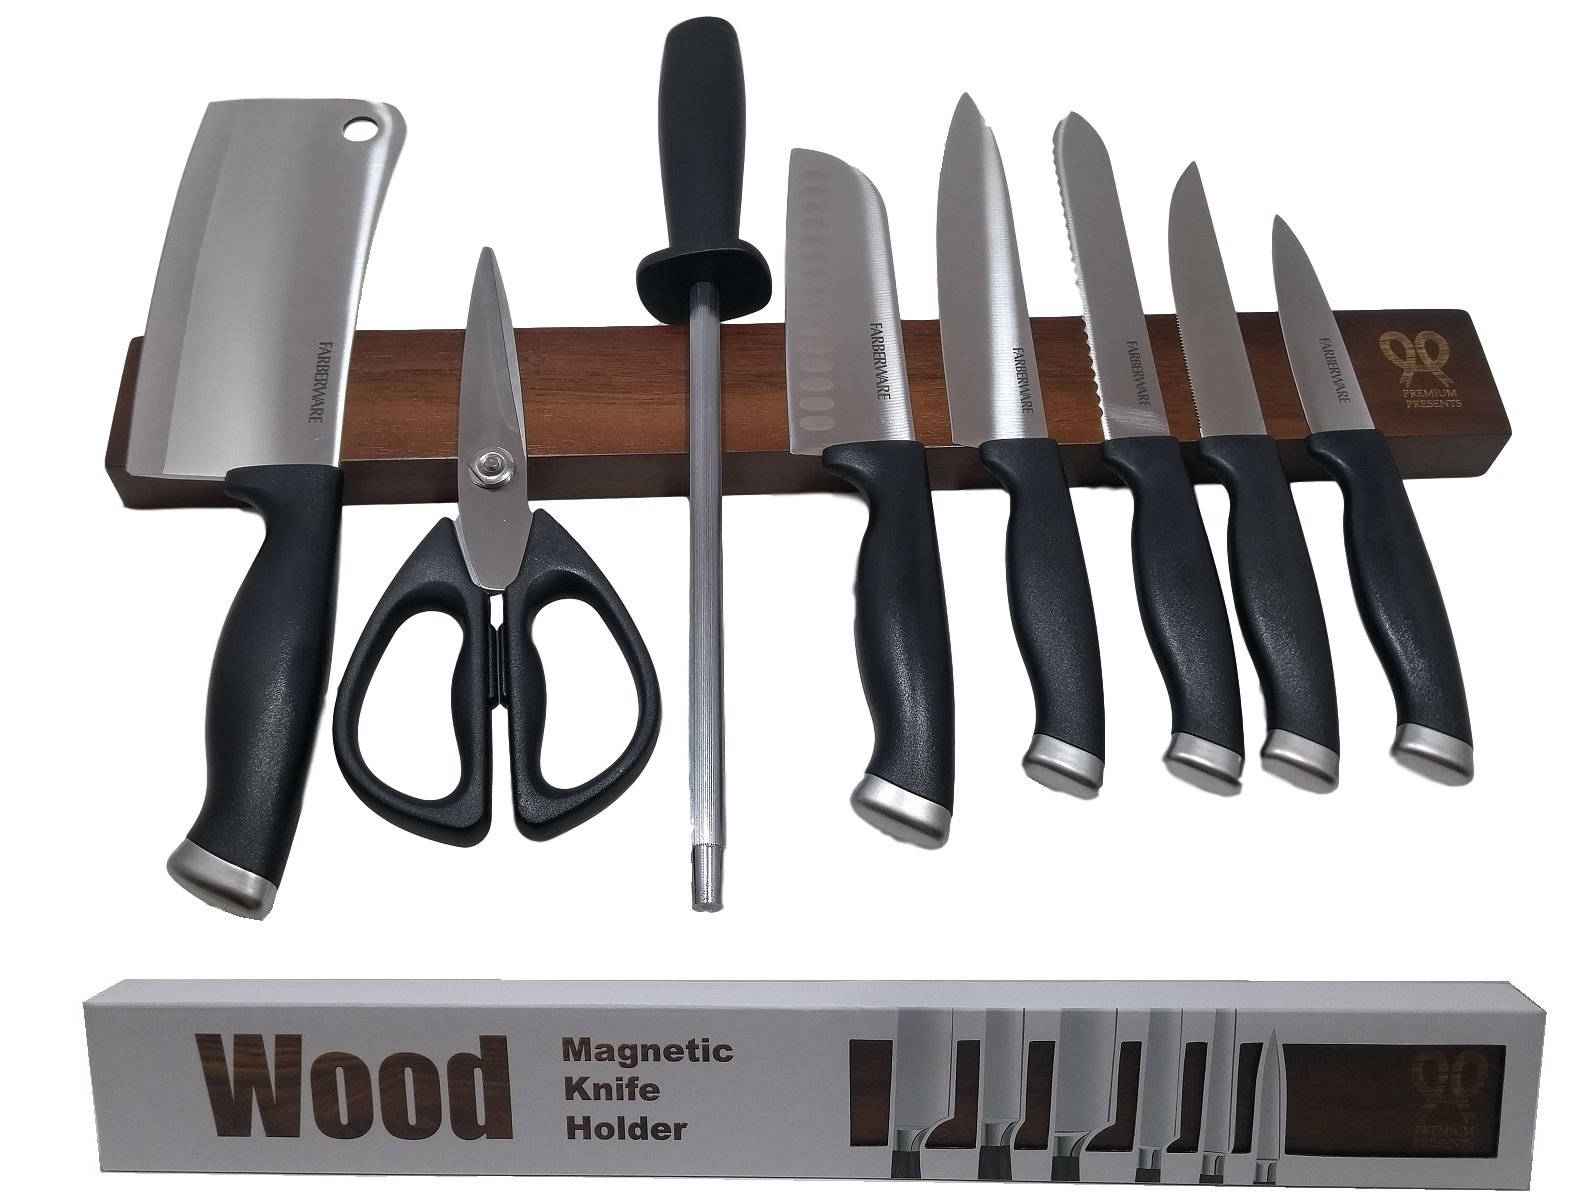 Dark Walnut wood magnetic knife strip. Replace knife block with magnetic knife holder. Great for organizing kitchen knives and metal tools. Dark brown. Gift box included.Premium Present brand. 17 inch